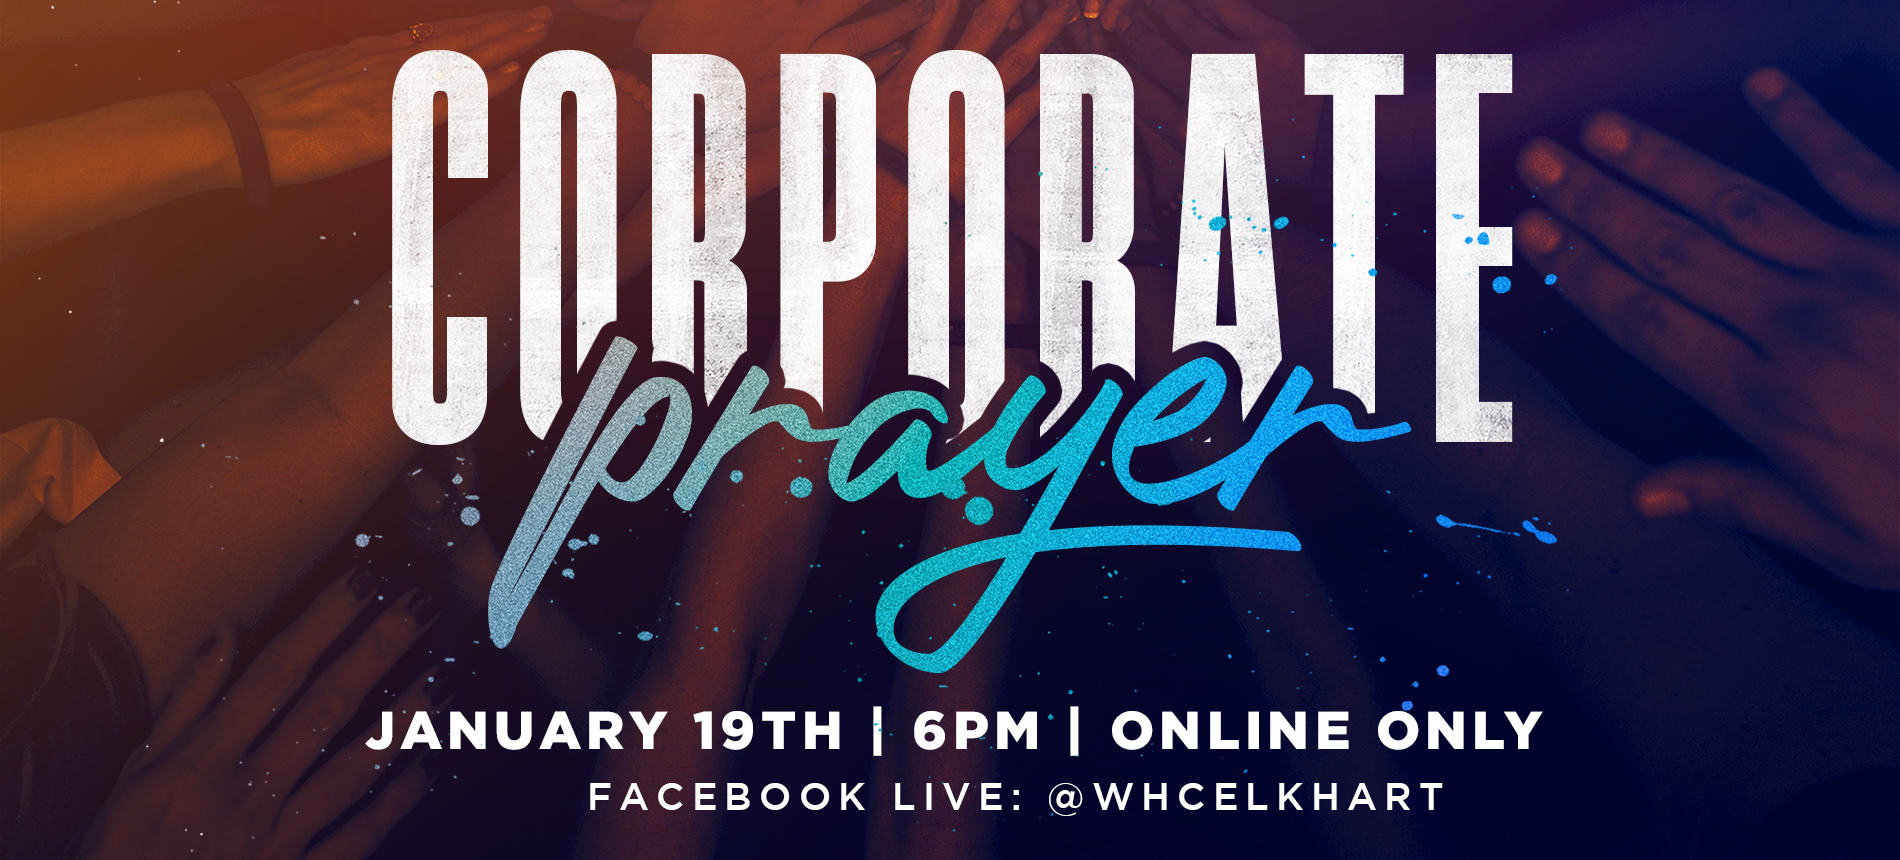 Corporate Prayer Beginning January 12th 6PM Facebook LIVE: @WHCELKHART